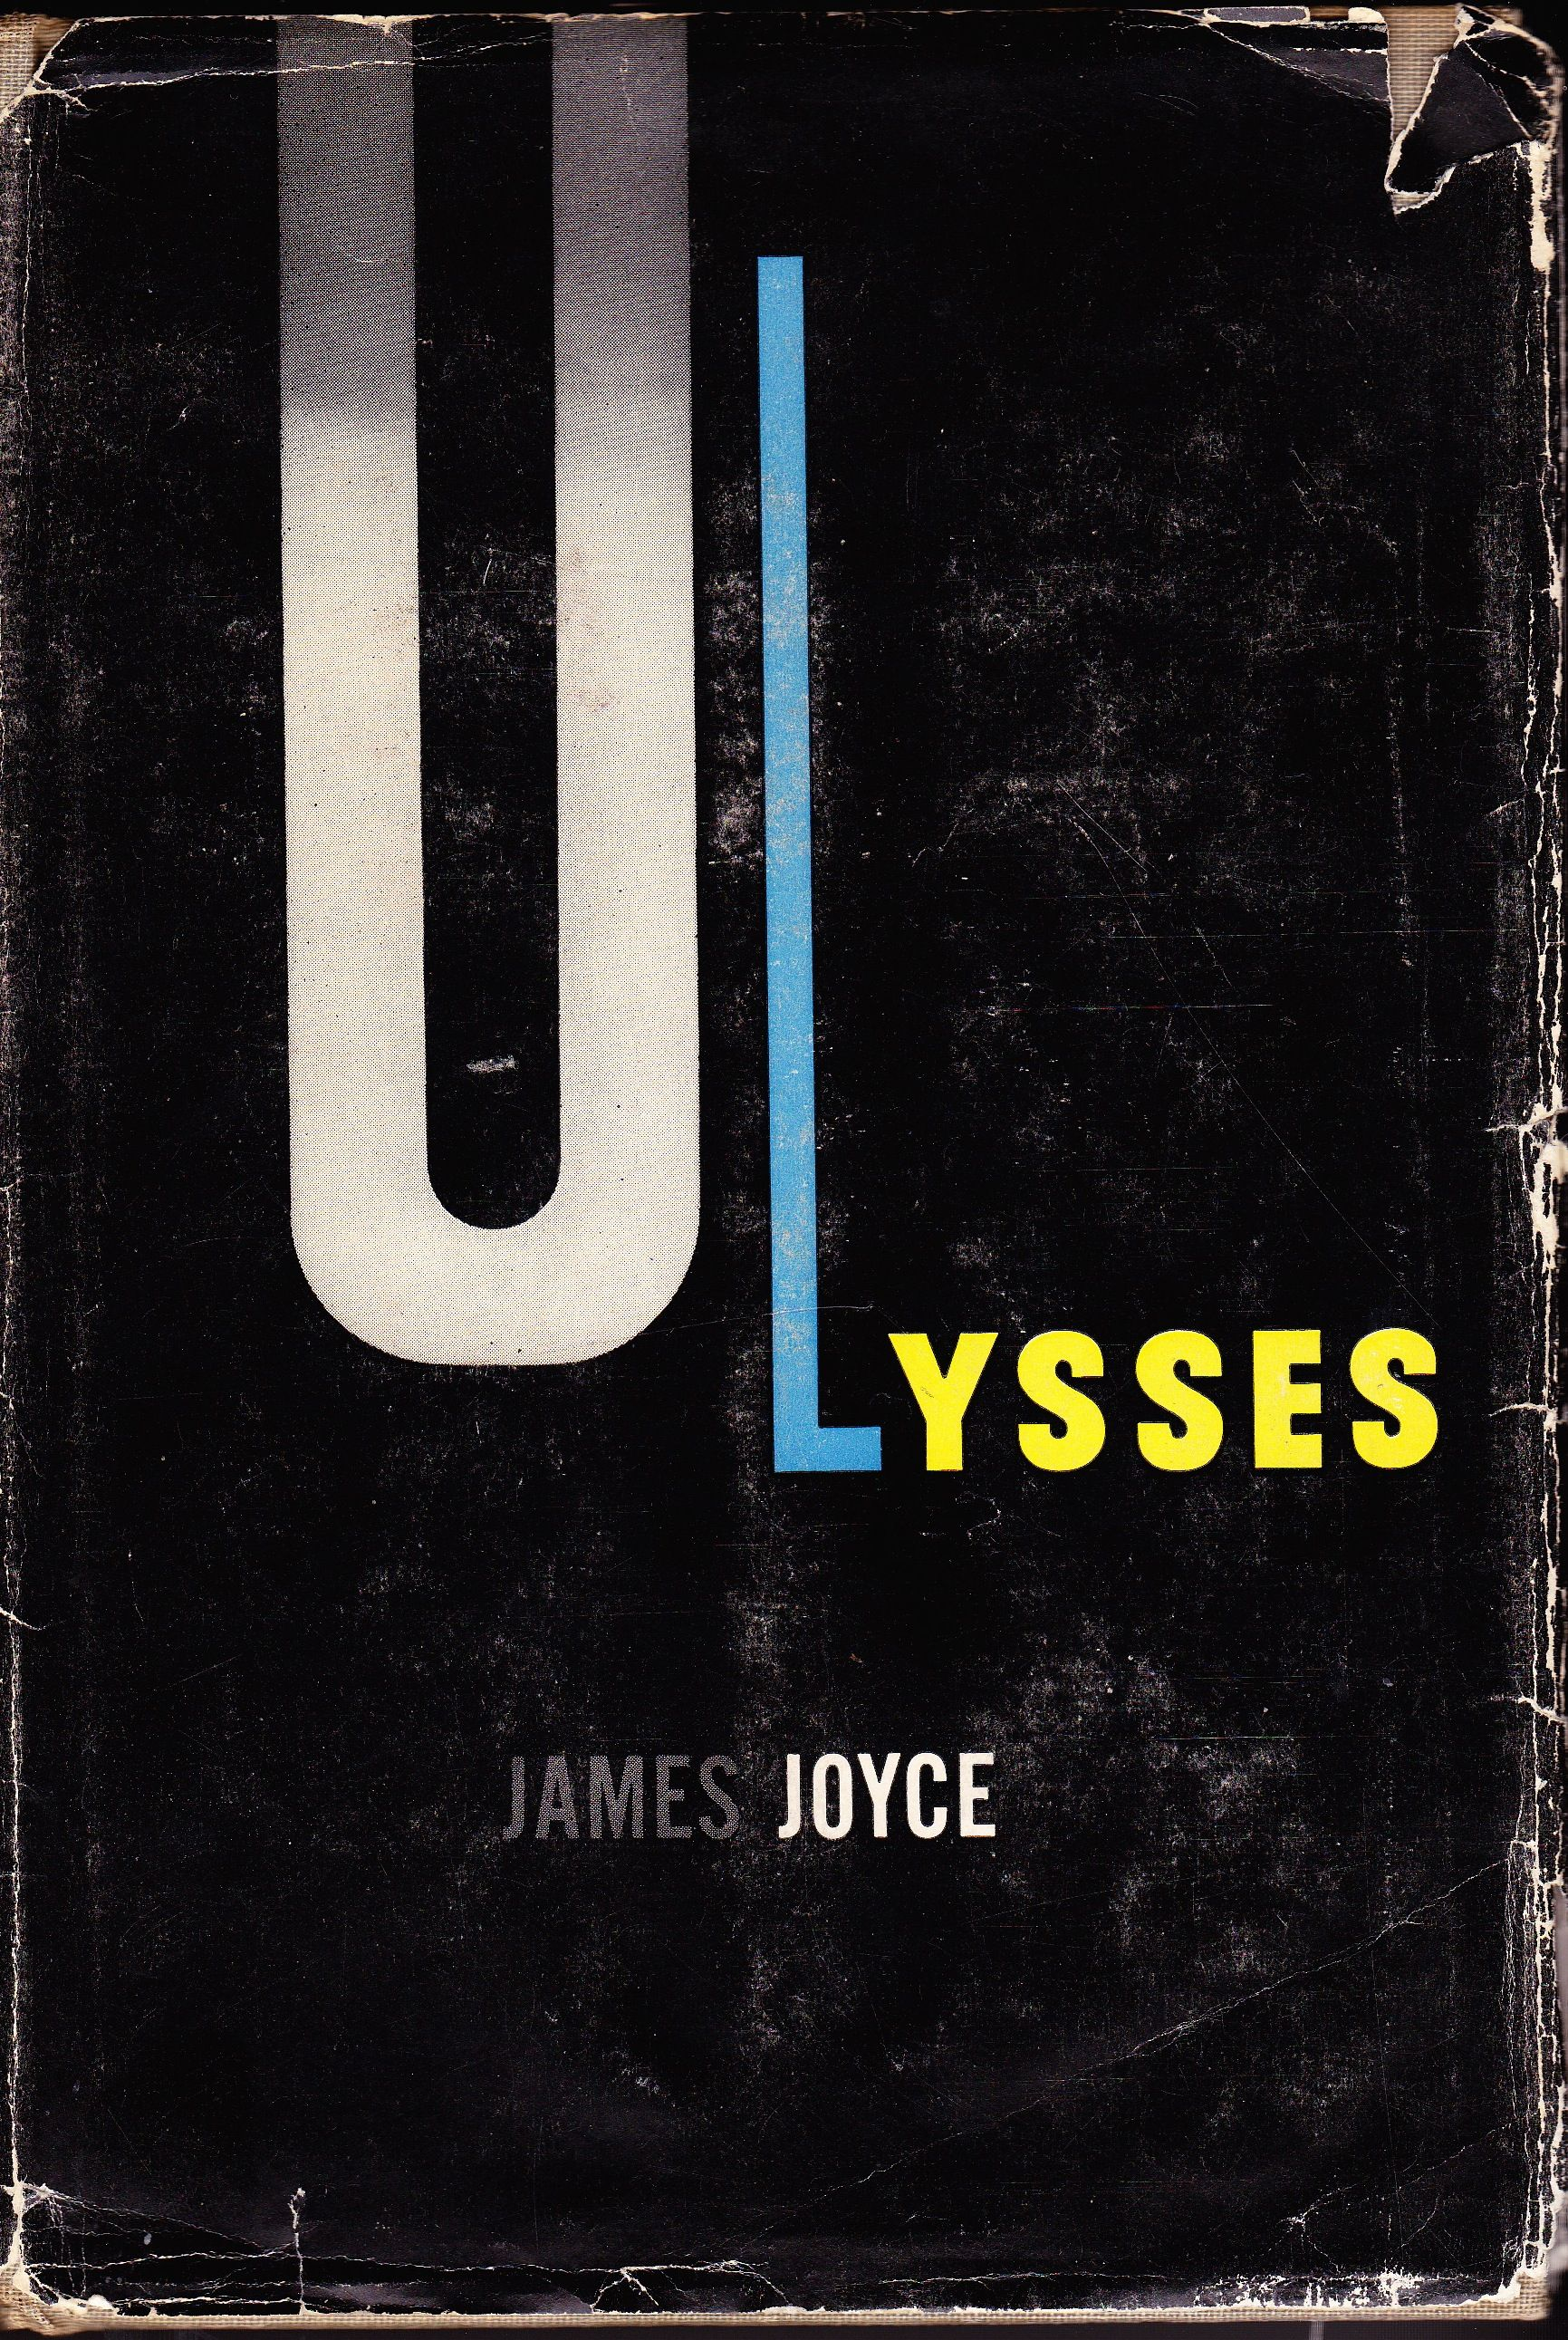 ulysses joyce and the book typography of ernst reichl ulysses by james joyce cover design by edward mcknight kauffer